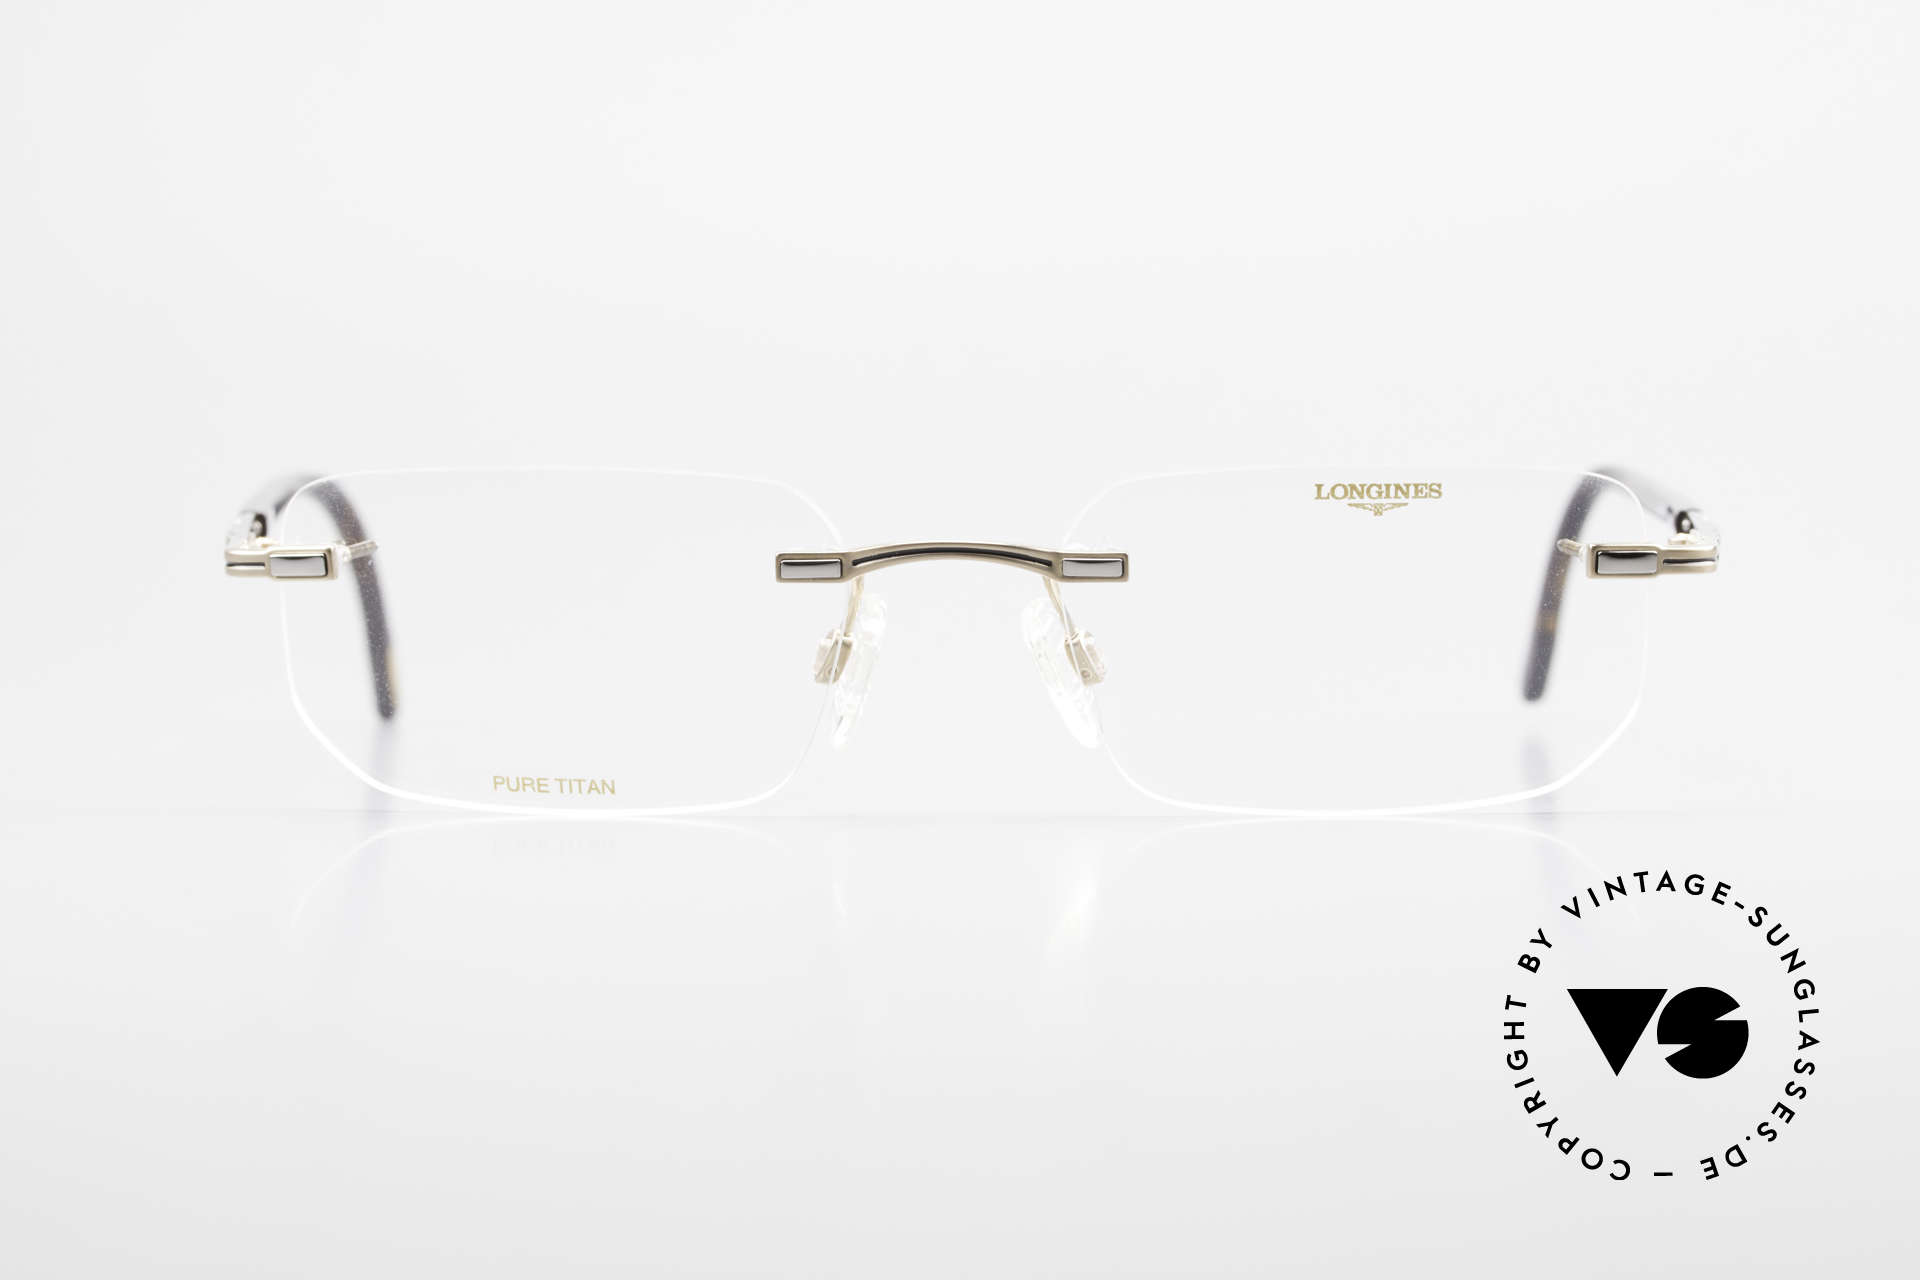 Longines 4238 90's Rimless Glasses Pure Titan, full frame shows with many small quality features, Made for Men